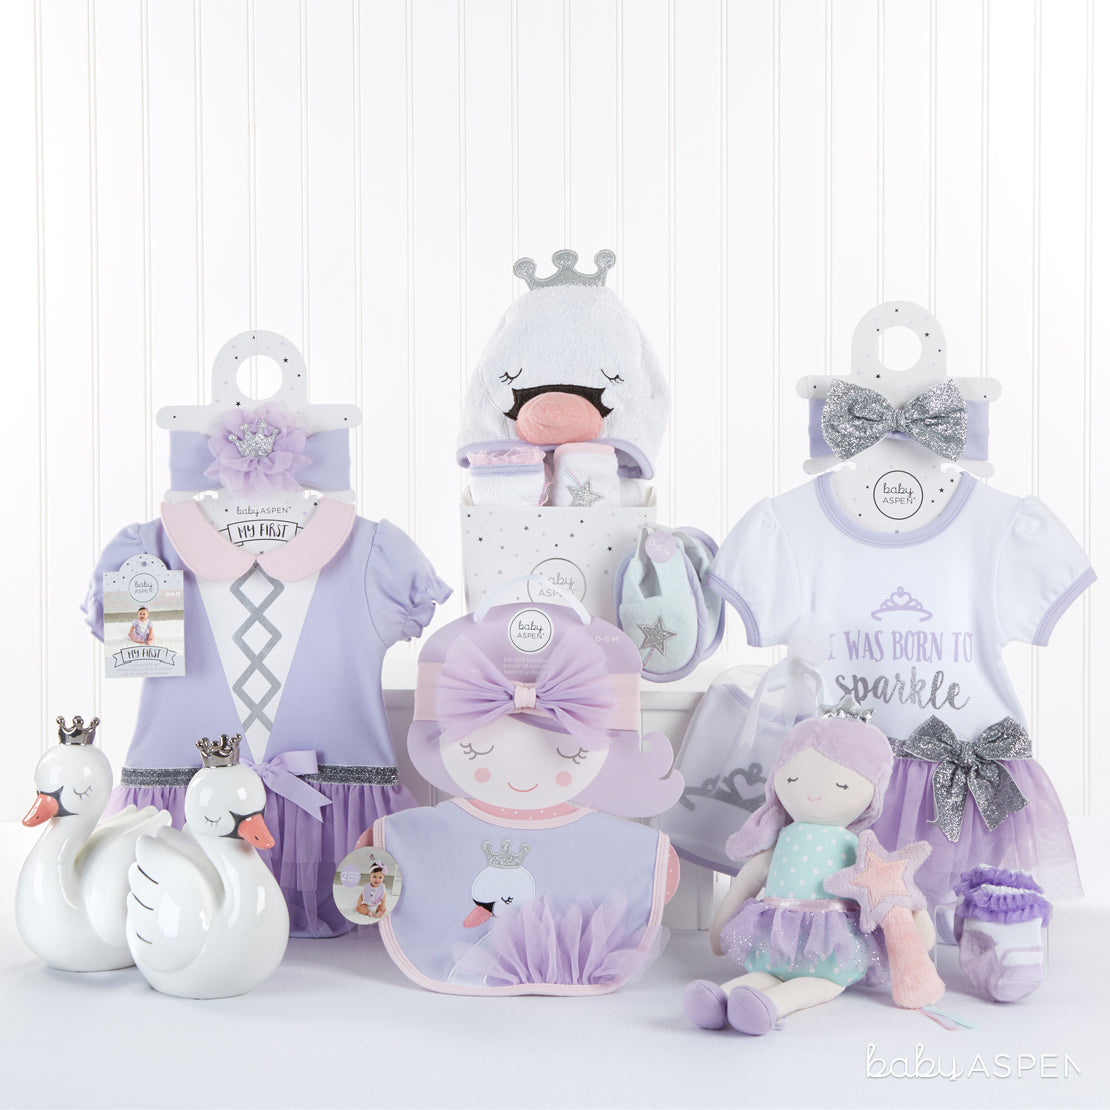 Fairy Princess Group Shot | Magical Gifts For Your Fairy Princess | Baby Aspen